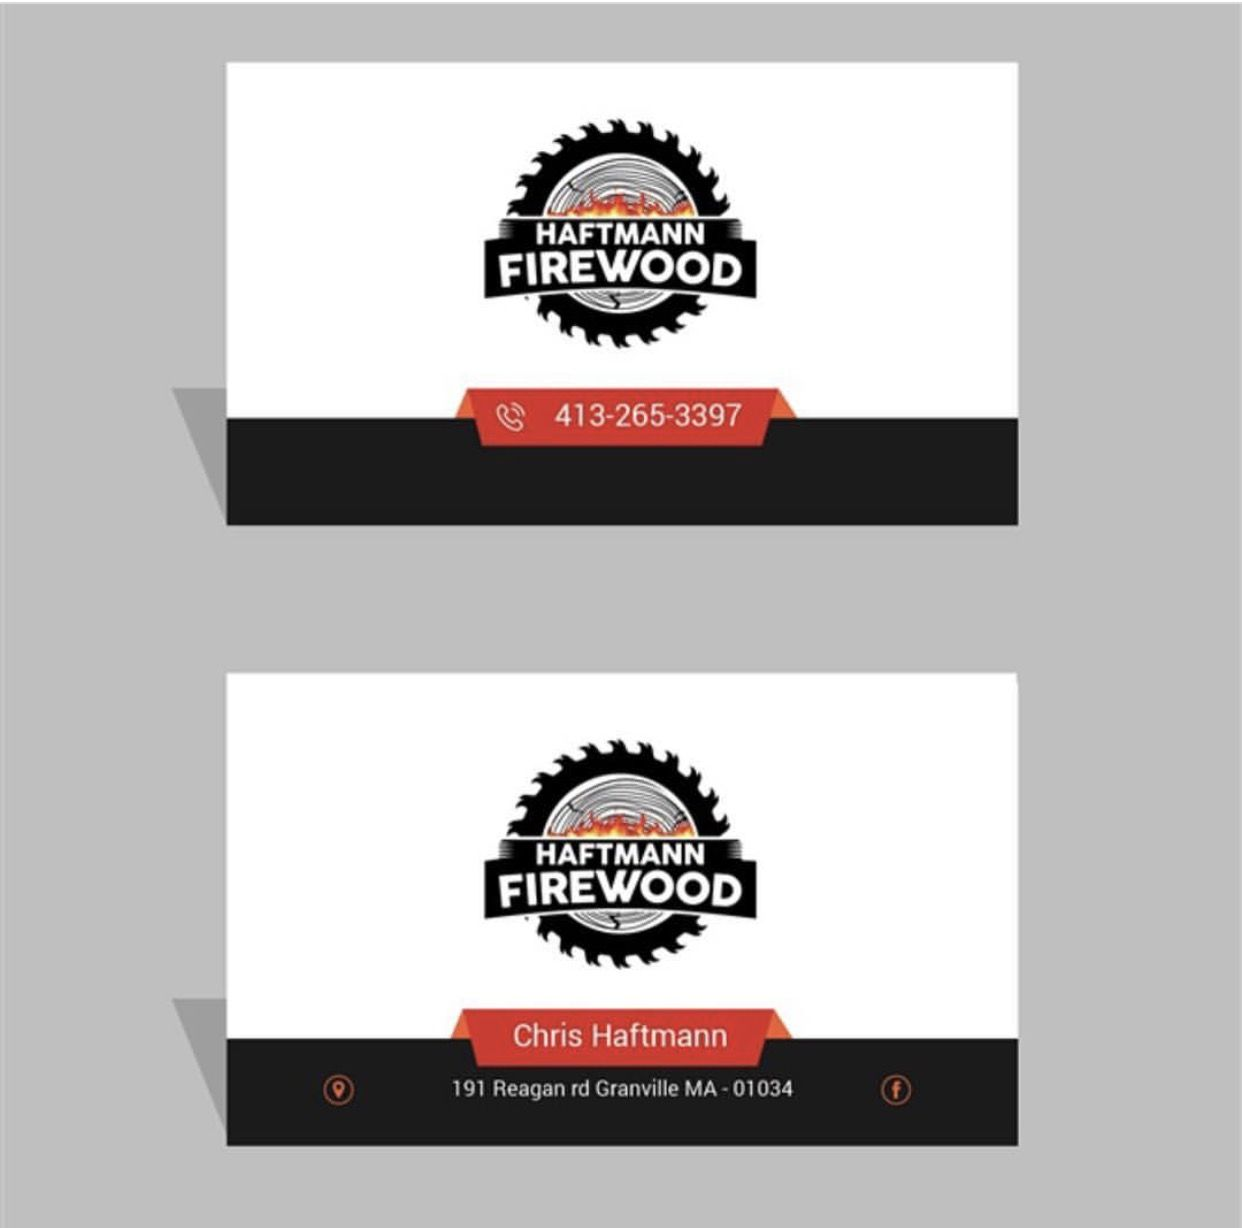 Business Cards 24 Hours Delivery | Best Business Cards